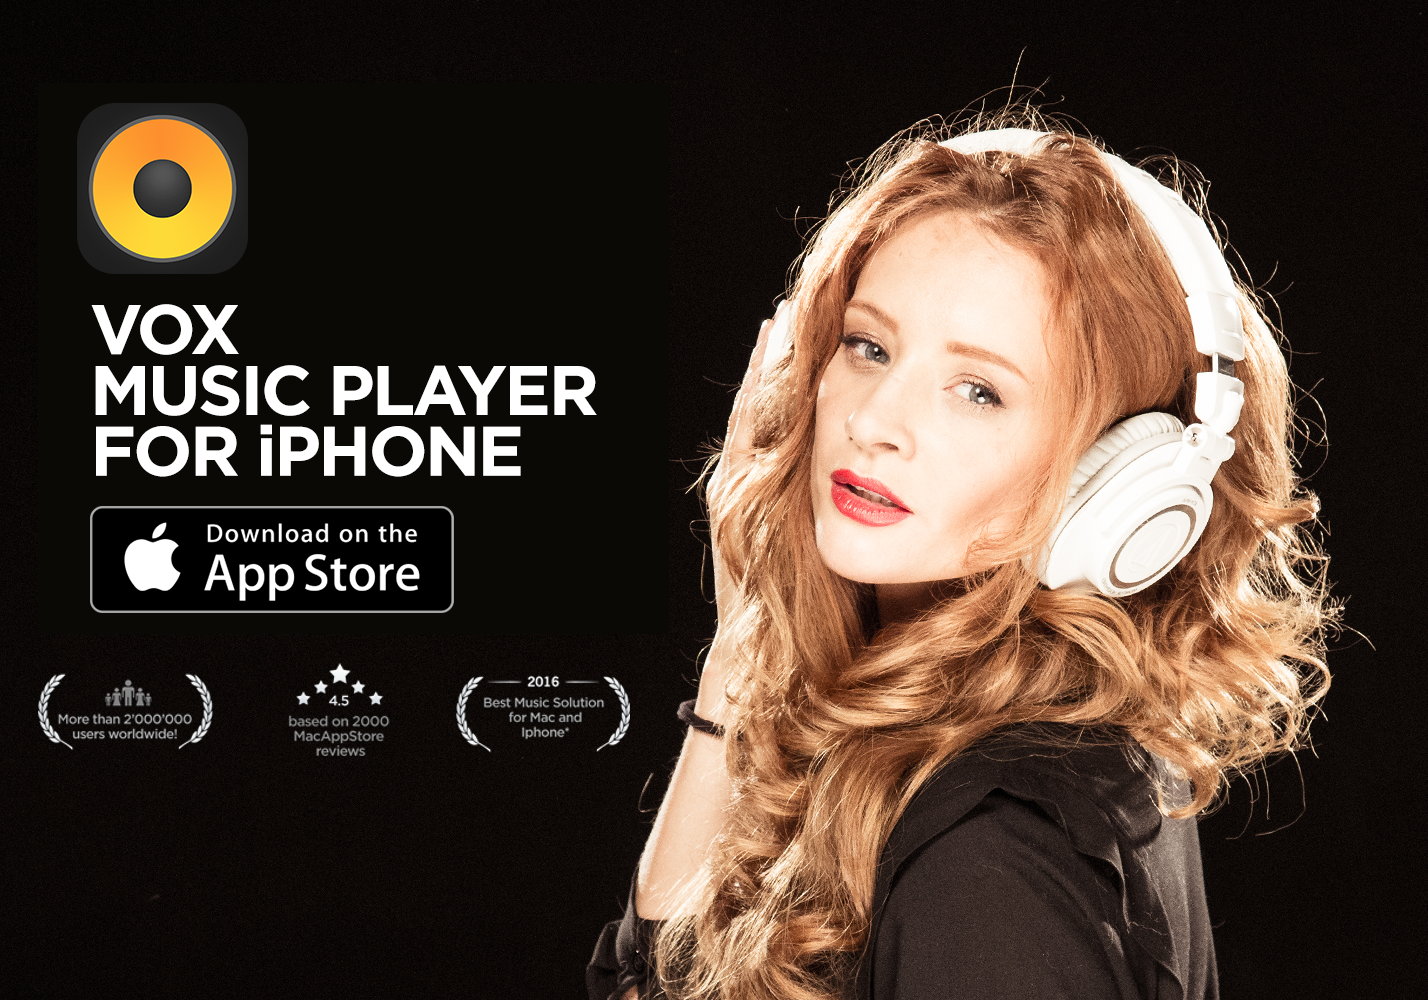 VOX Hi-Res Music Player is the best music player for Hi-Res music. Available for Mac & iPhone, it's been the #1 choice for more than two million users from all around the world.